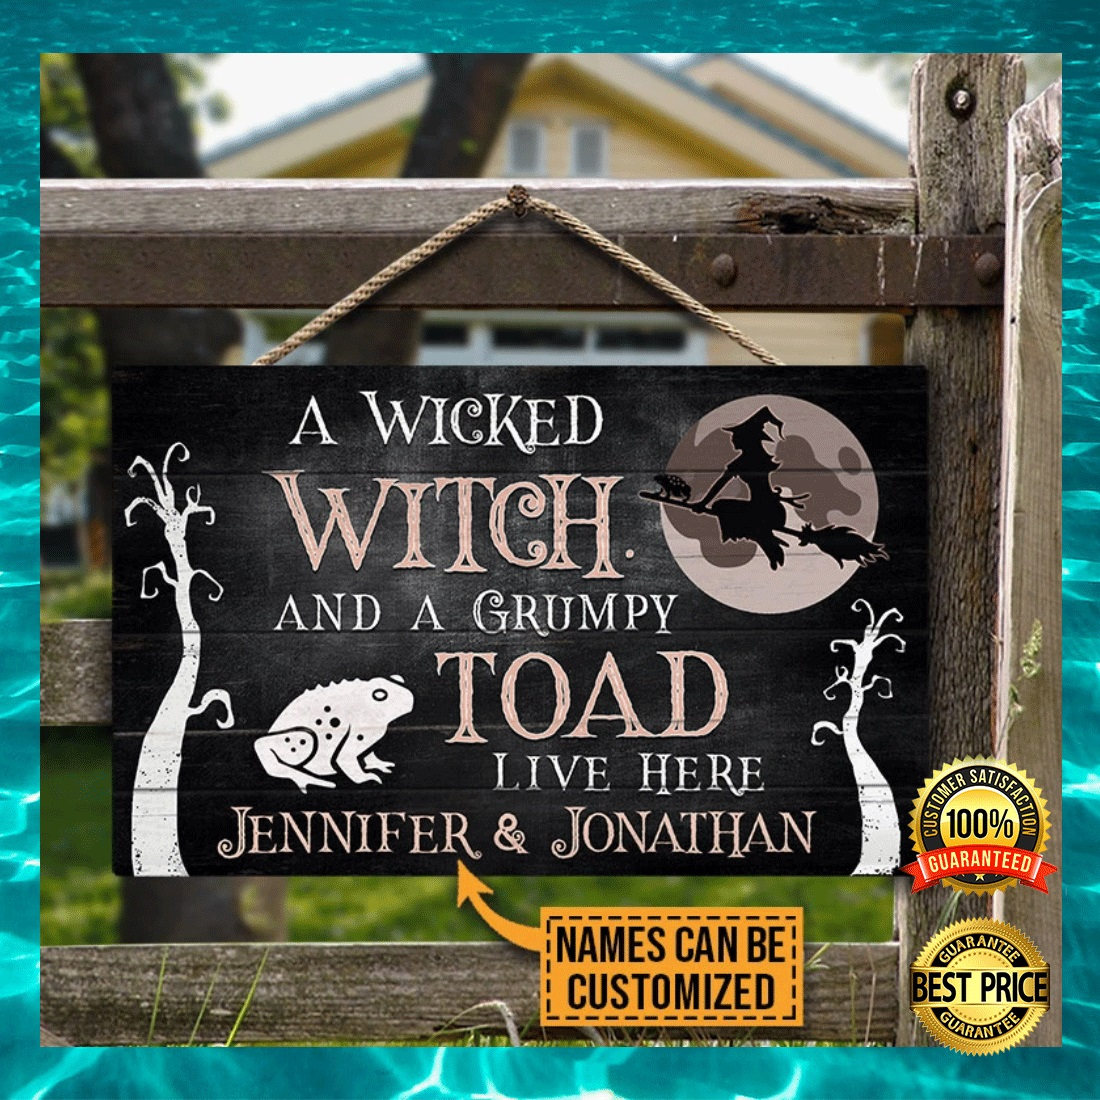 PERSONALIZED A WICKED WITCH AND A GRUMPY TOAD LIVE HERE DOOR SIGN 5